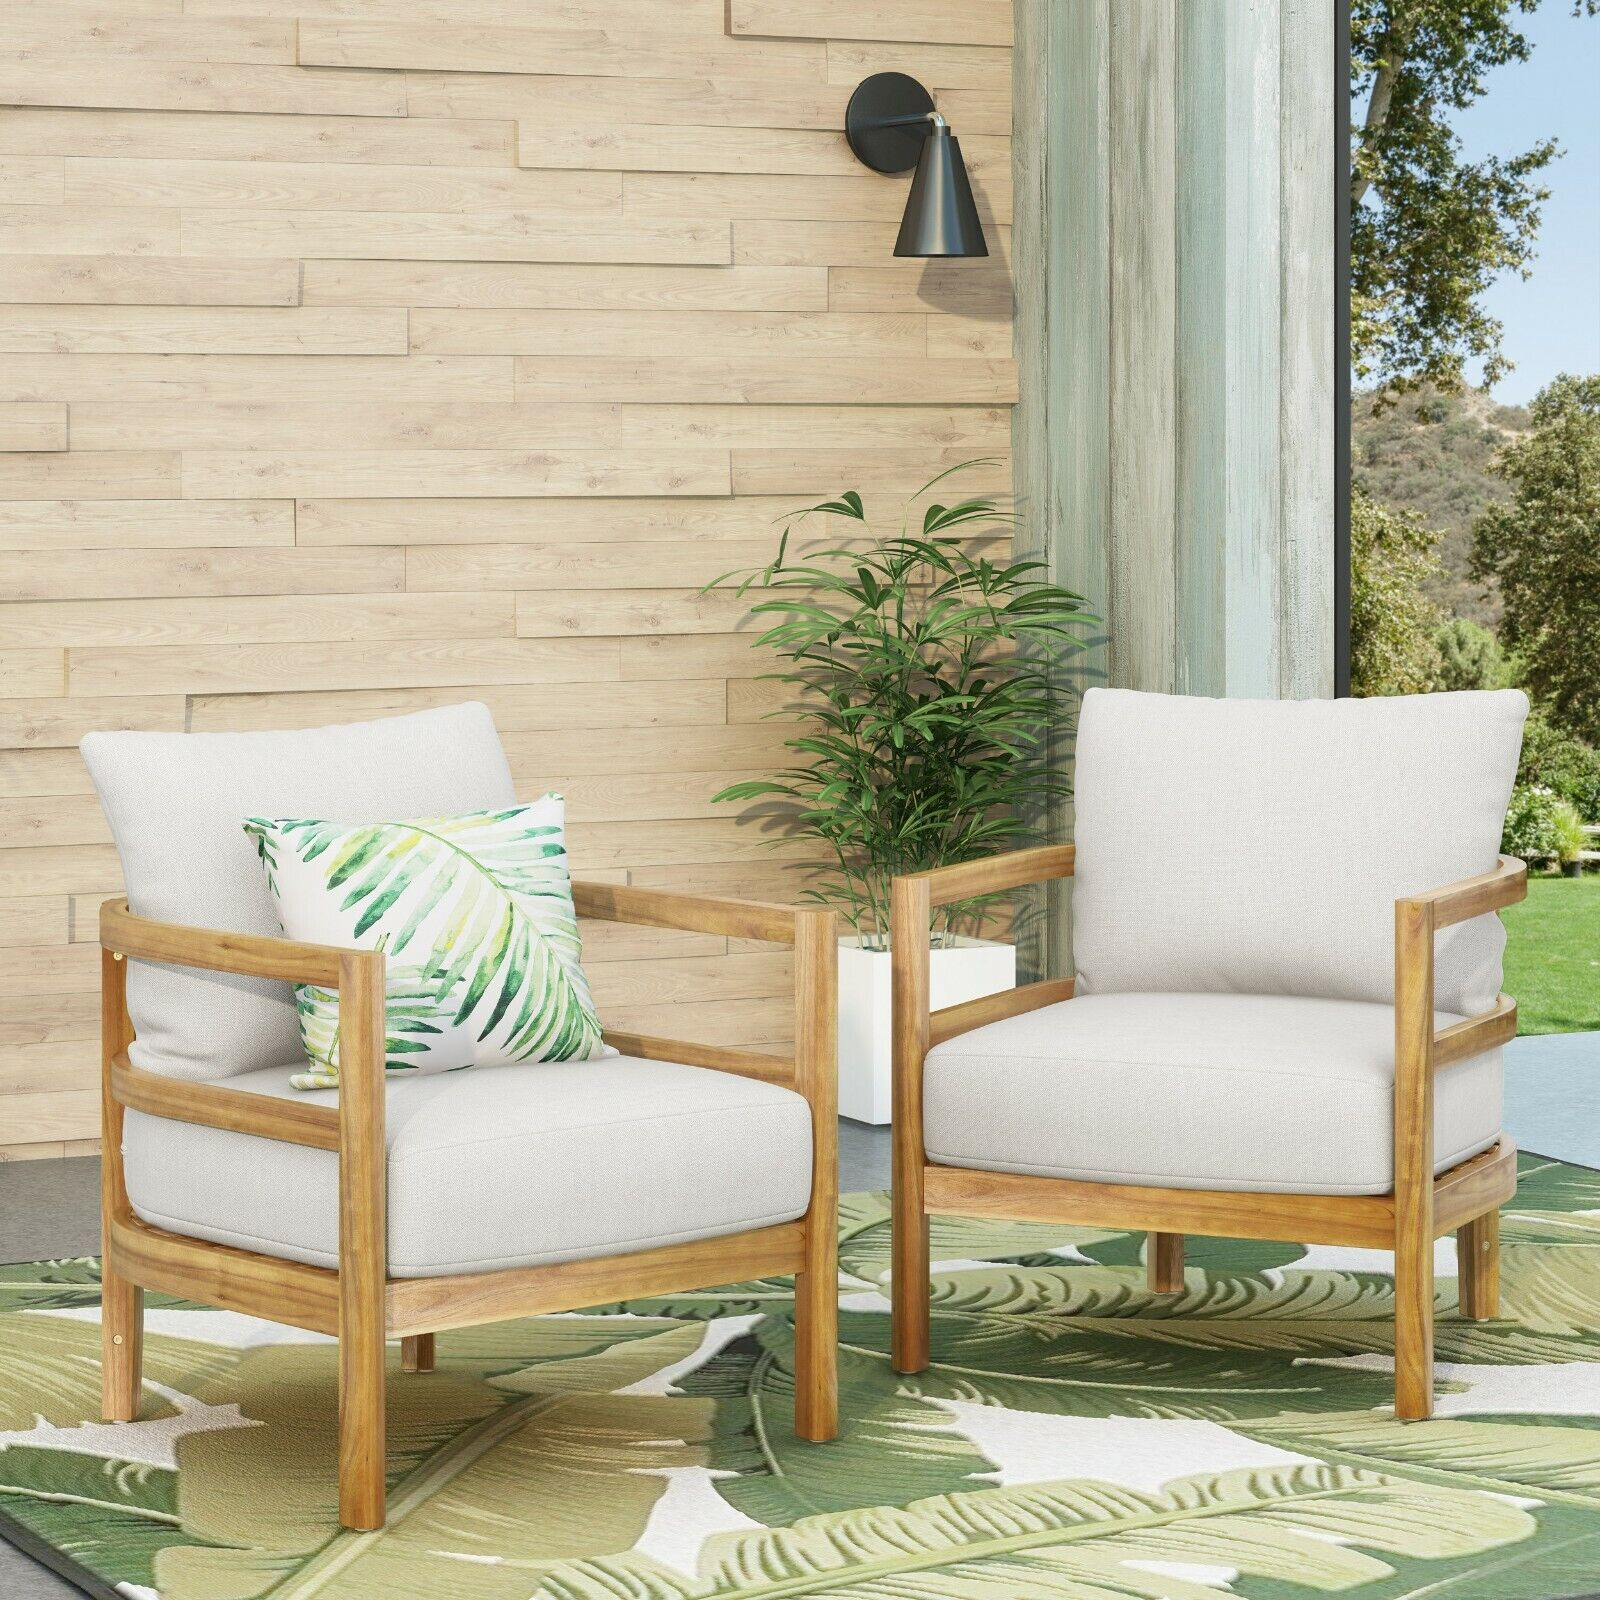 Aggie Outdoor Acacia Wood Club Chair with Cushion, Set of 2, Teak and White Home & Garden